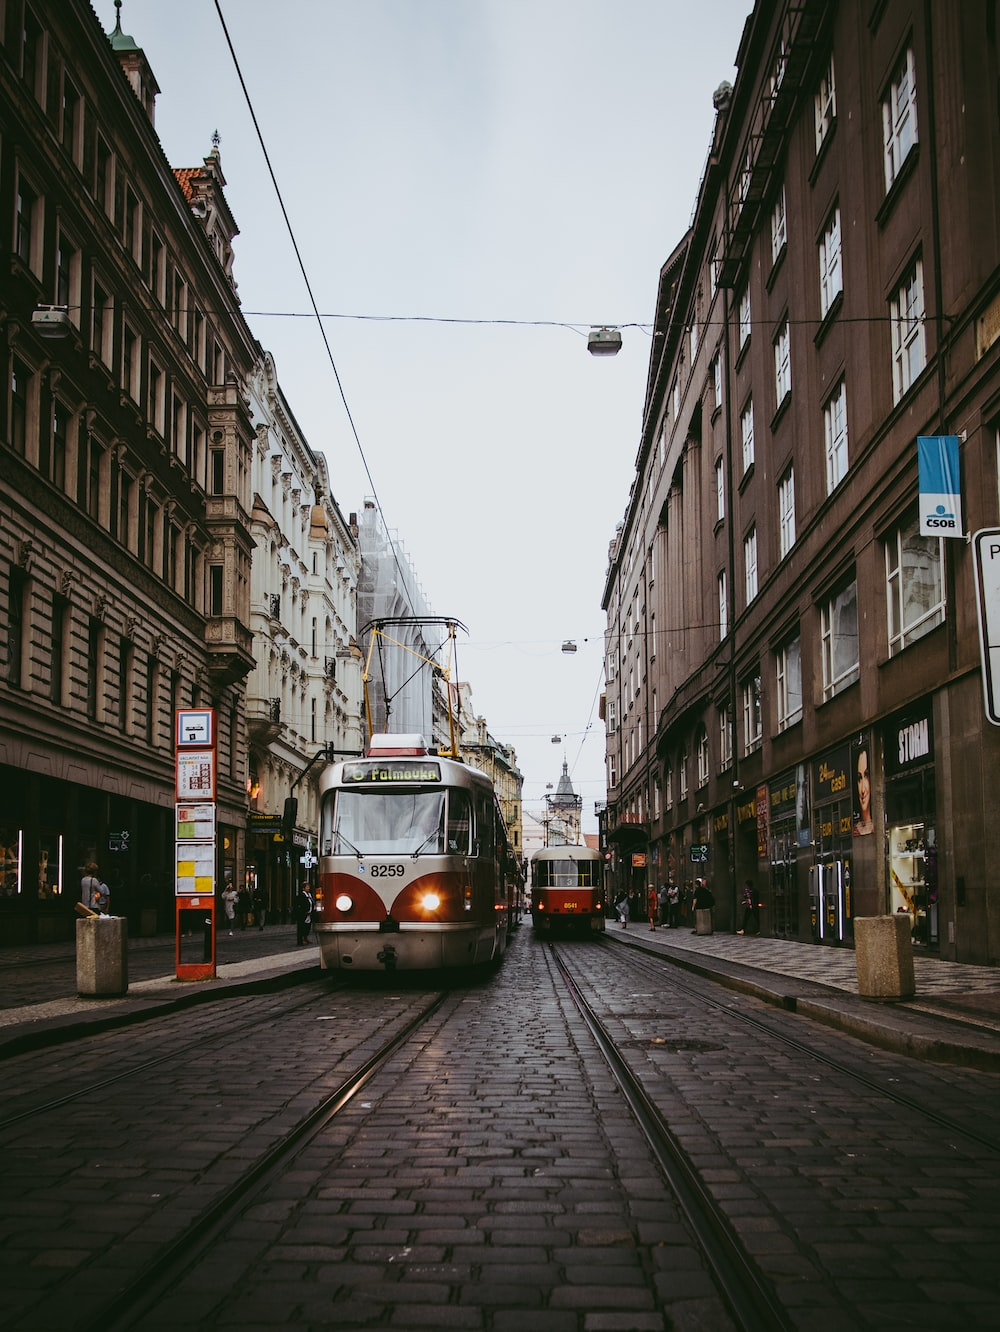 photography of traveling tram during daytime